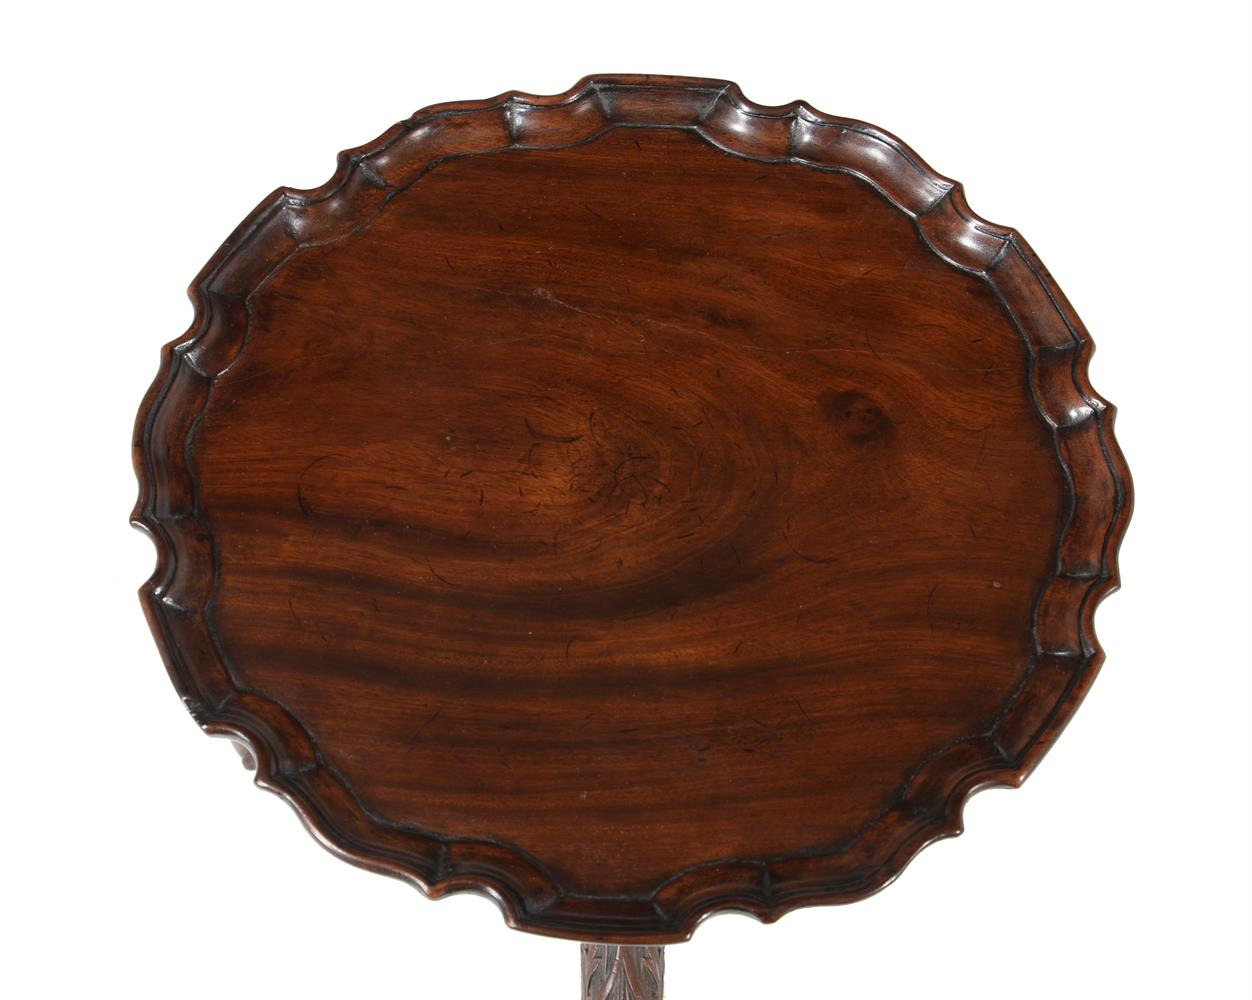 A GEORGE II MAHOGANY CANDLE STAND, CIRCA 1755 - Image 2 of 3